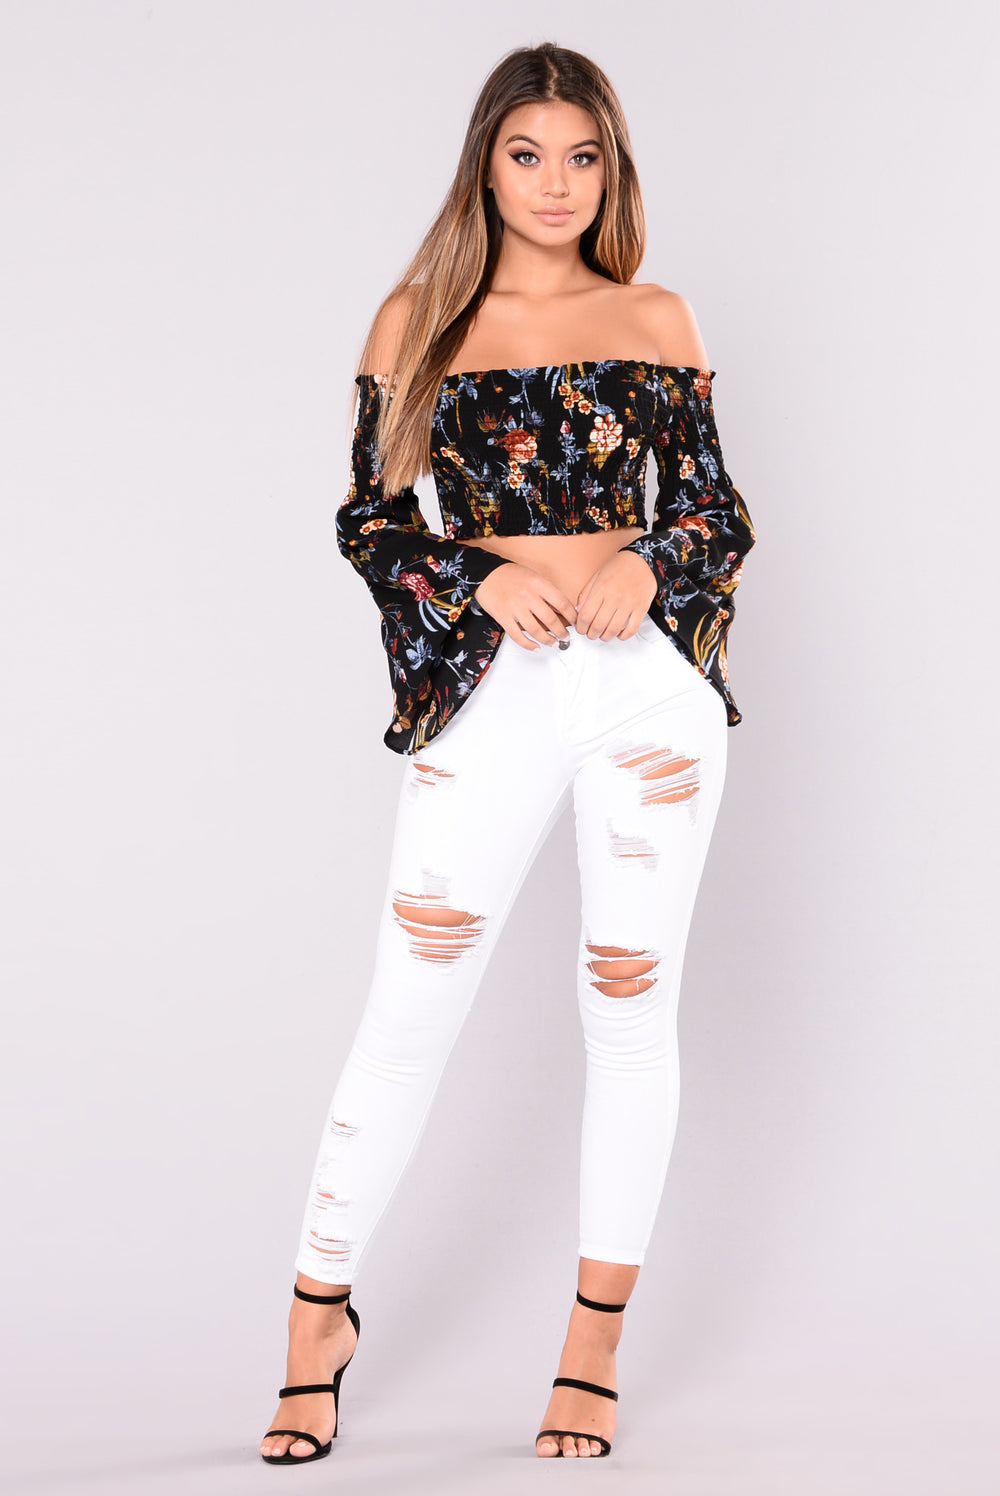 So Humble Bell Sleeve Crop Top - Black/Floral